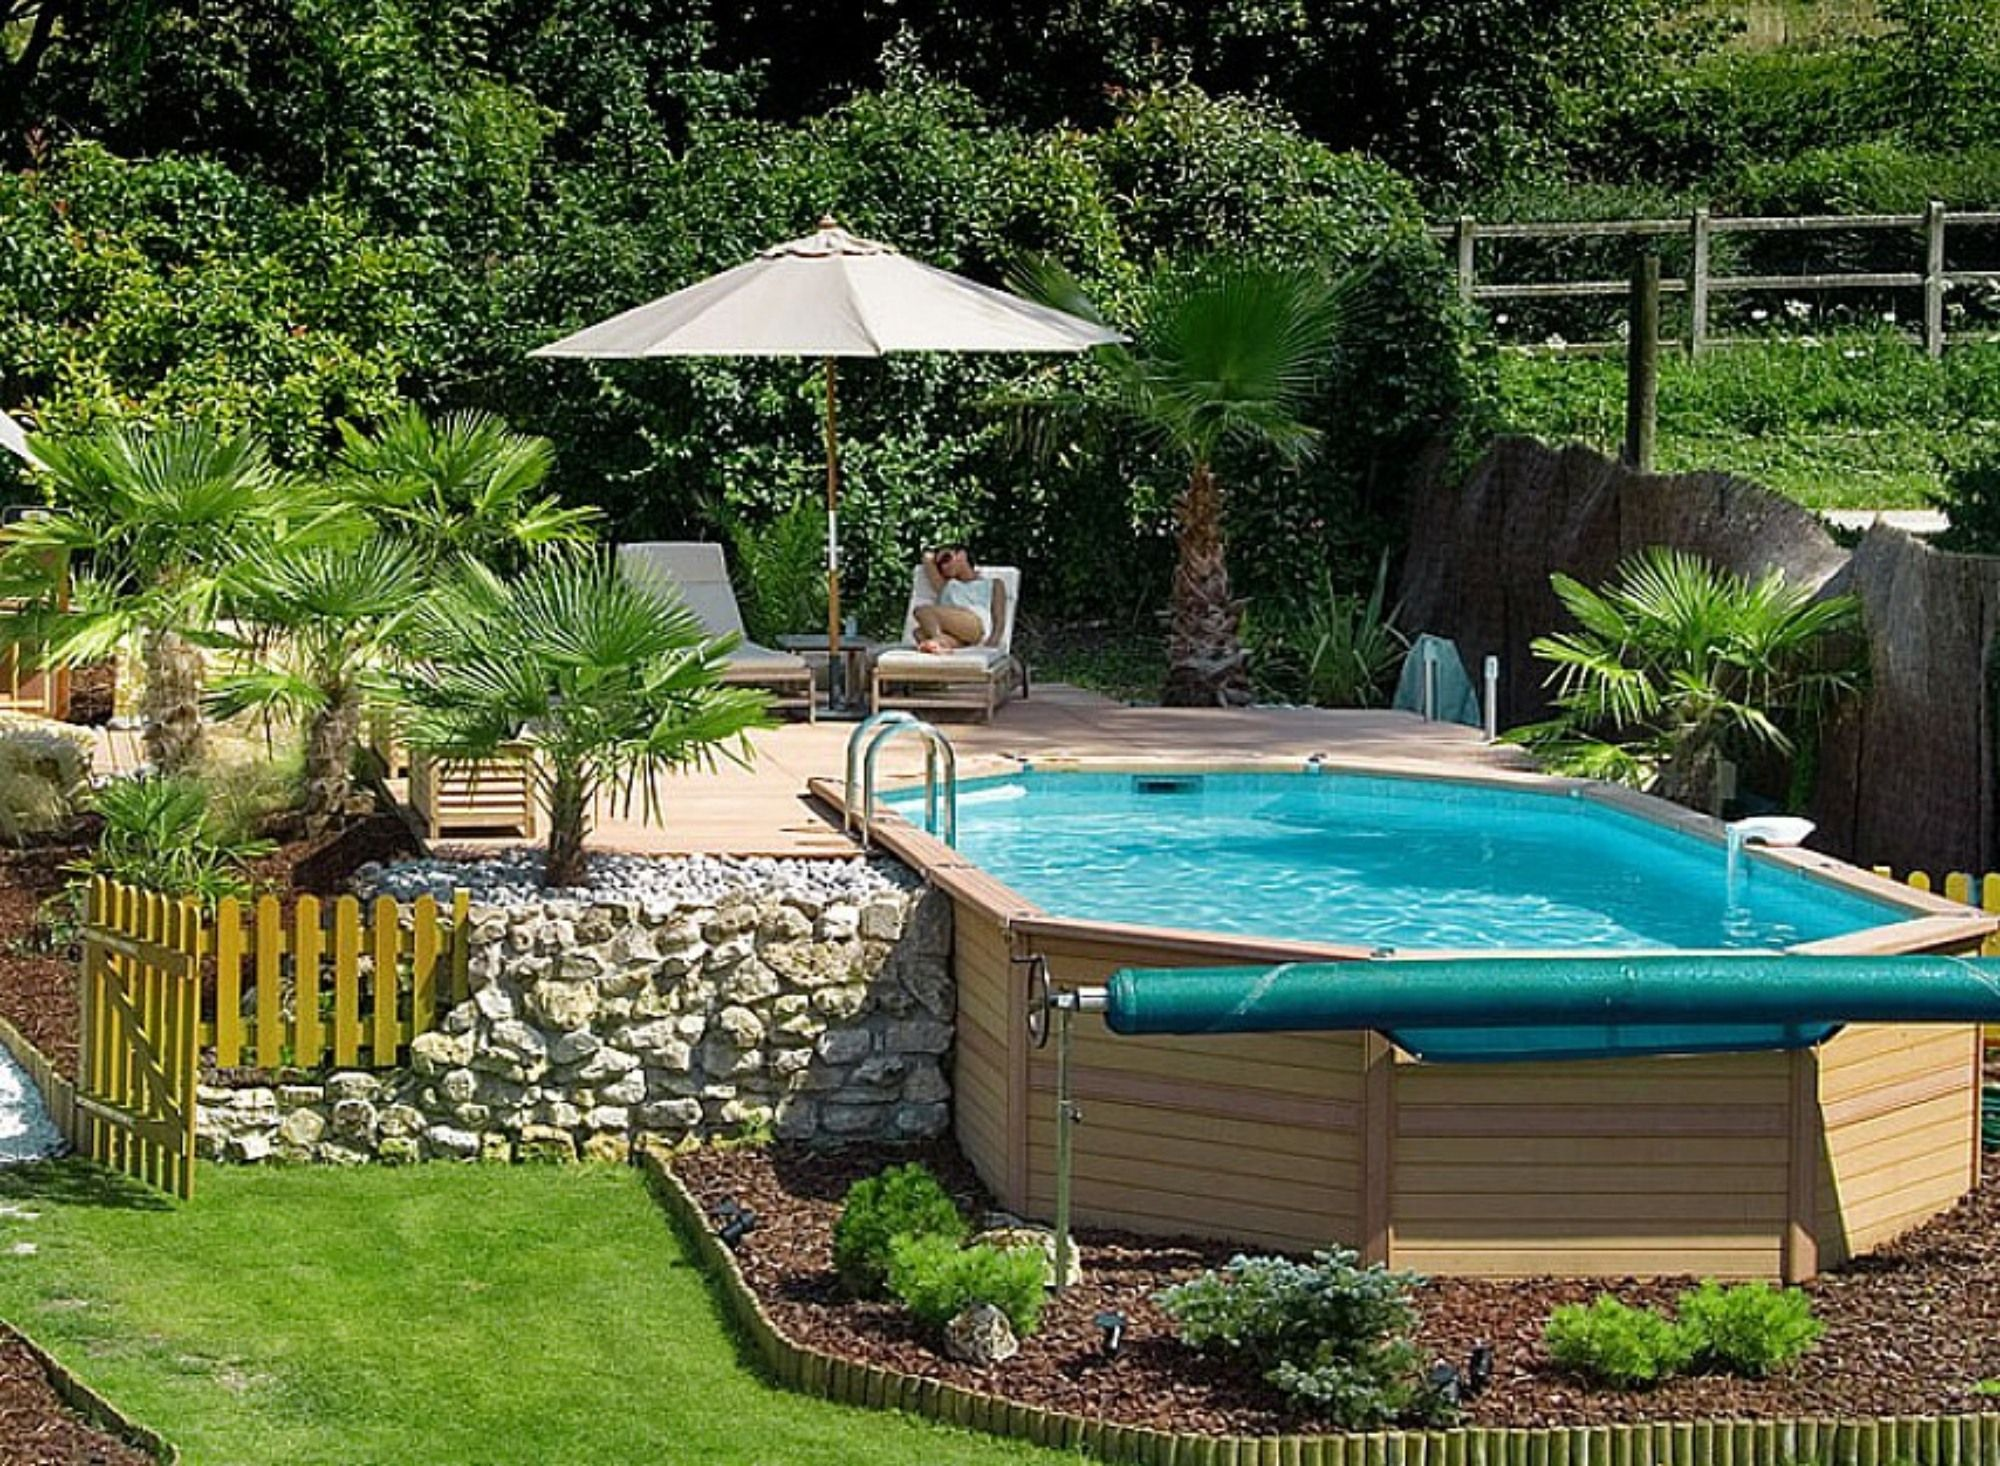 Backyard ideas with above ground pools - 40 Uniquely Awesome Above Ground Pools With Decks Outdoor Ideasbackyard